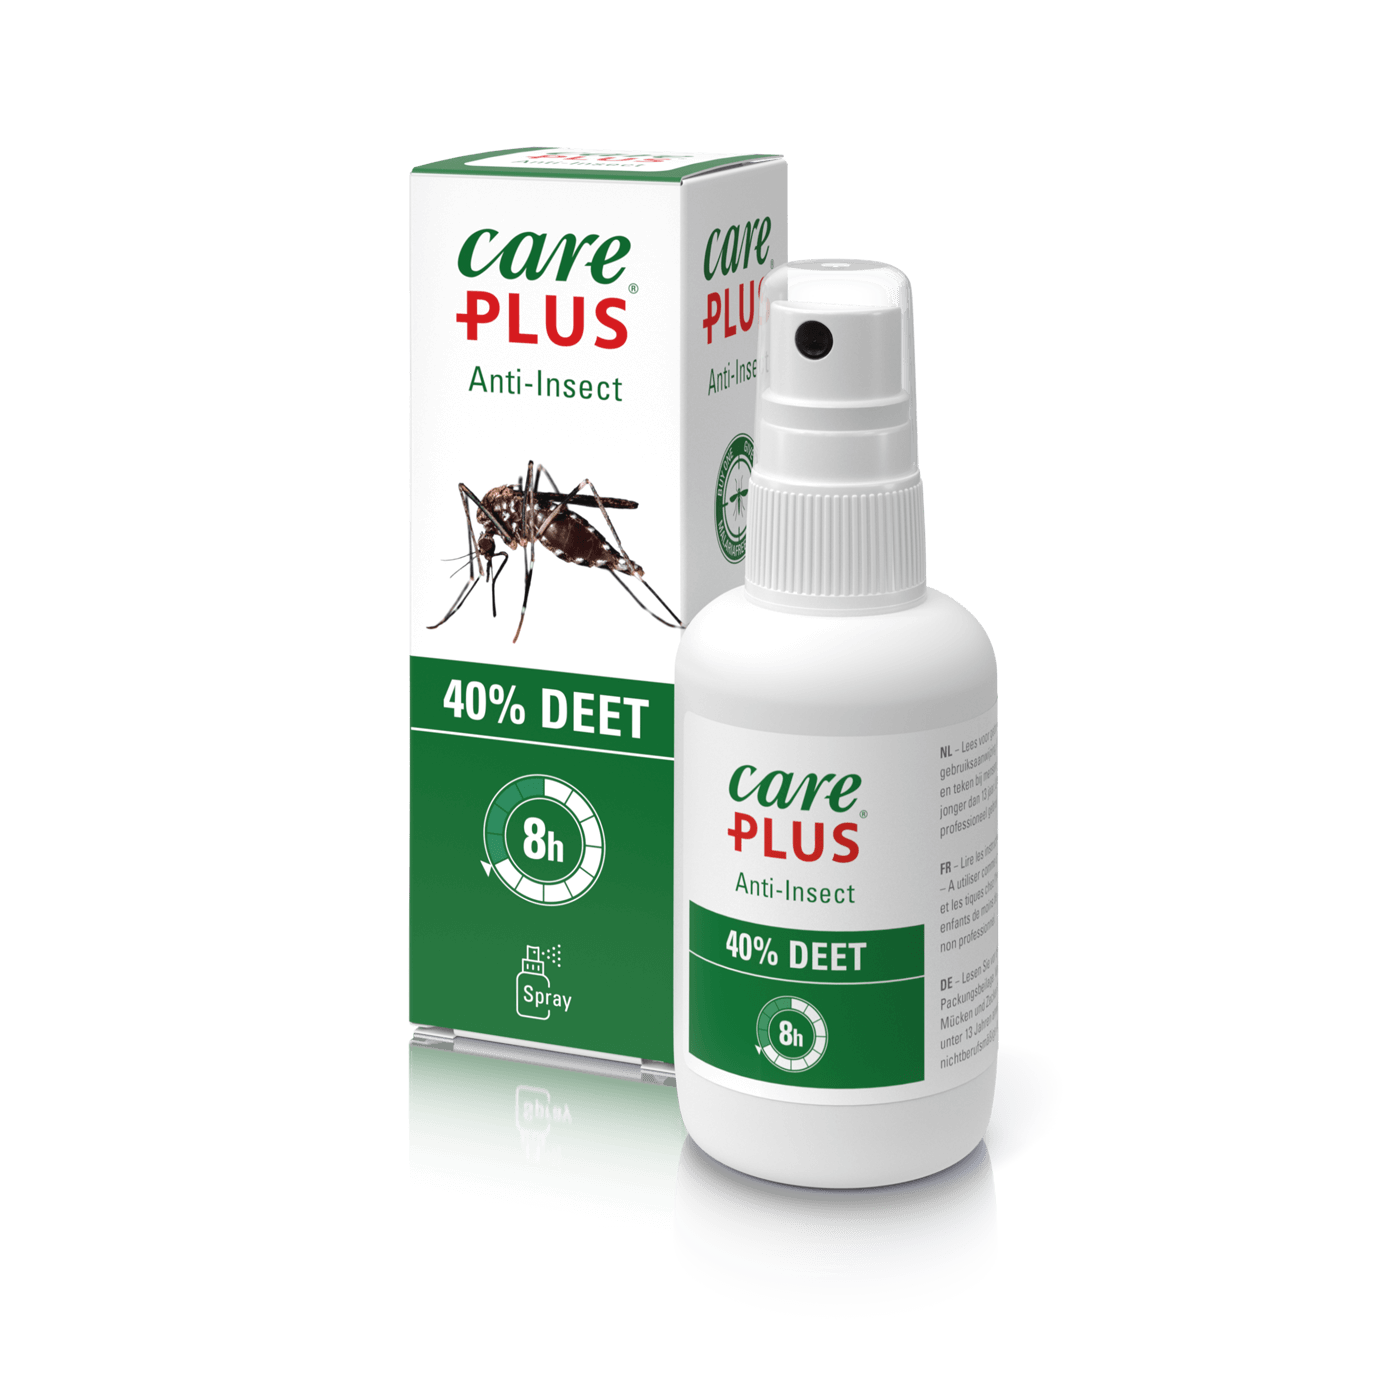 Care Plus Anti-Insect 40% DEET